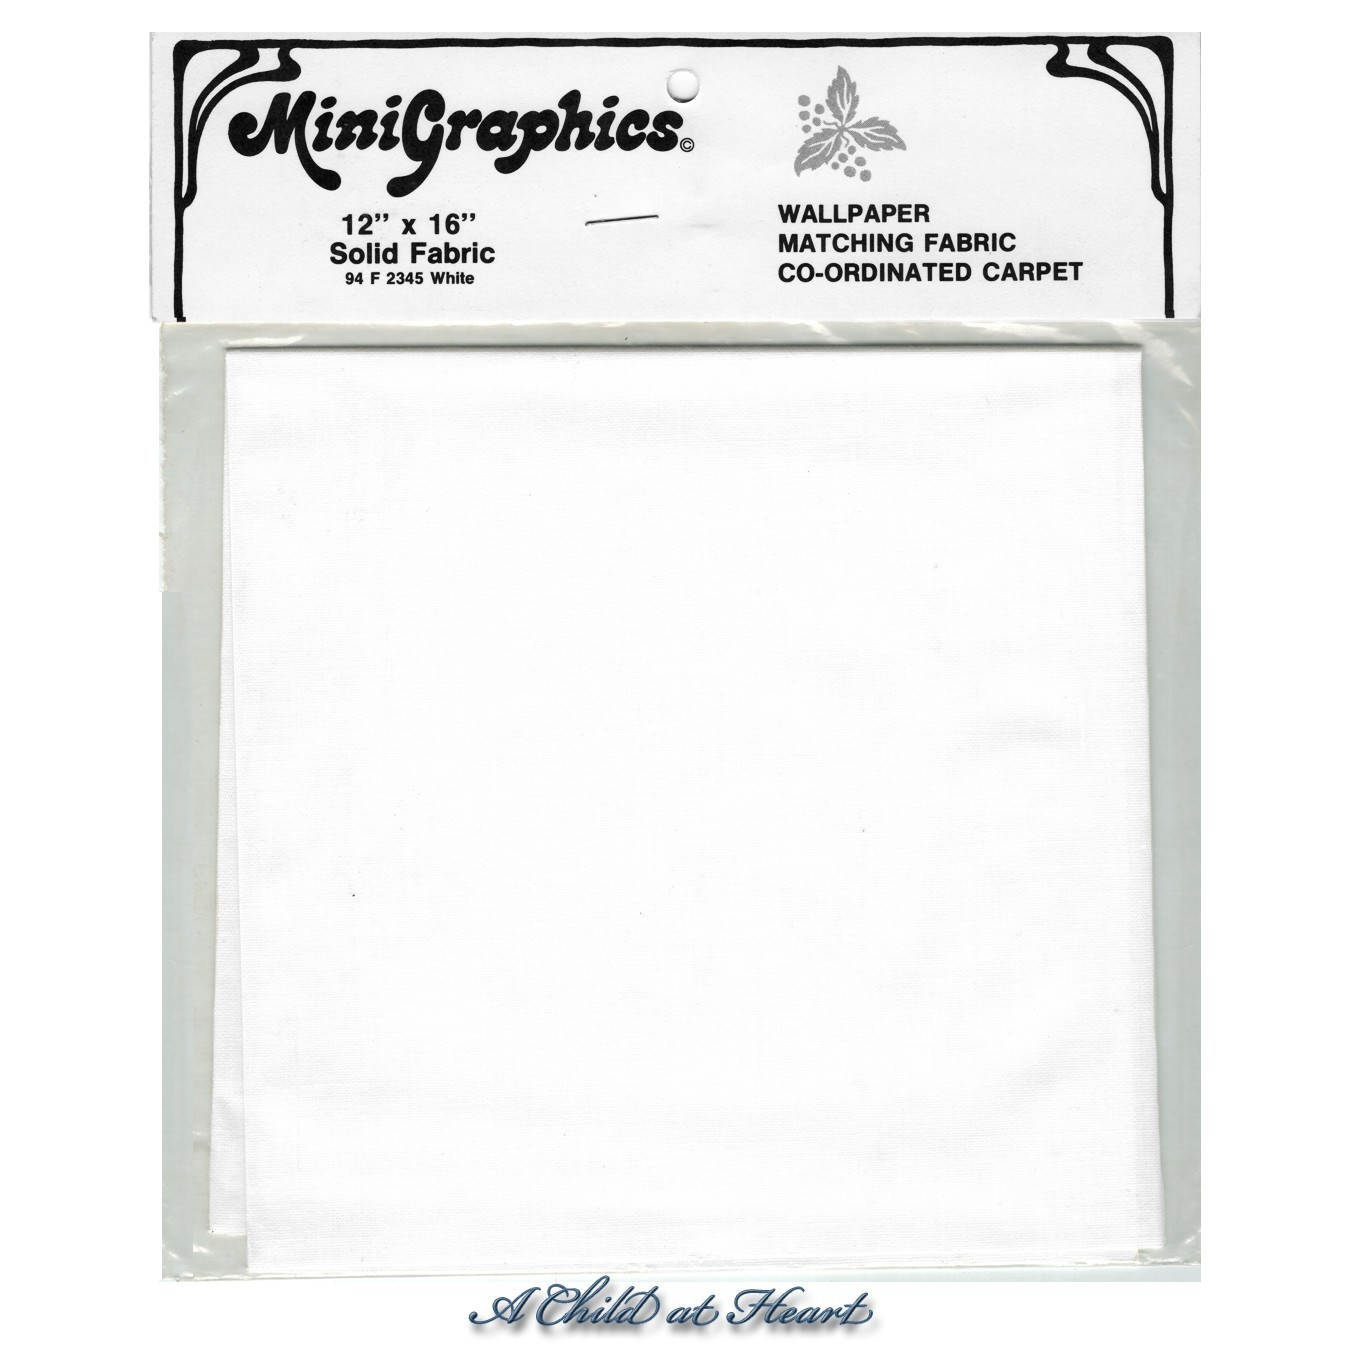 § Disc $5 Off - Solid White Fabric - Product Image